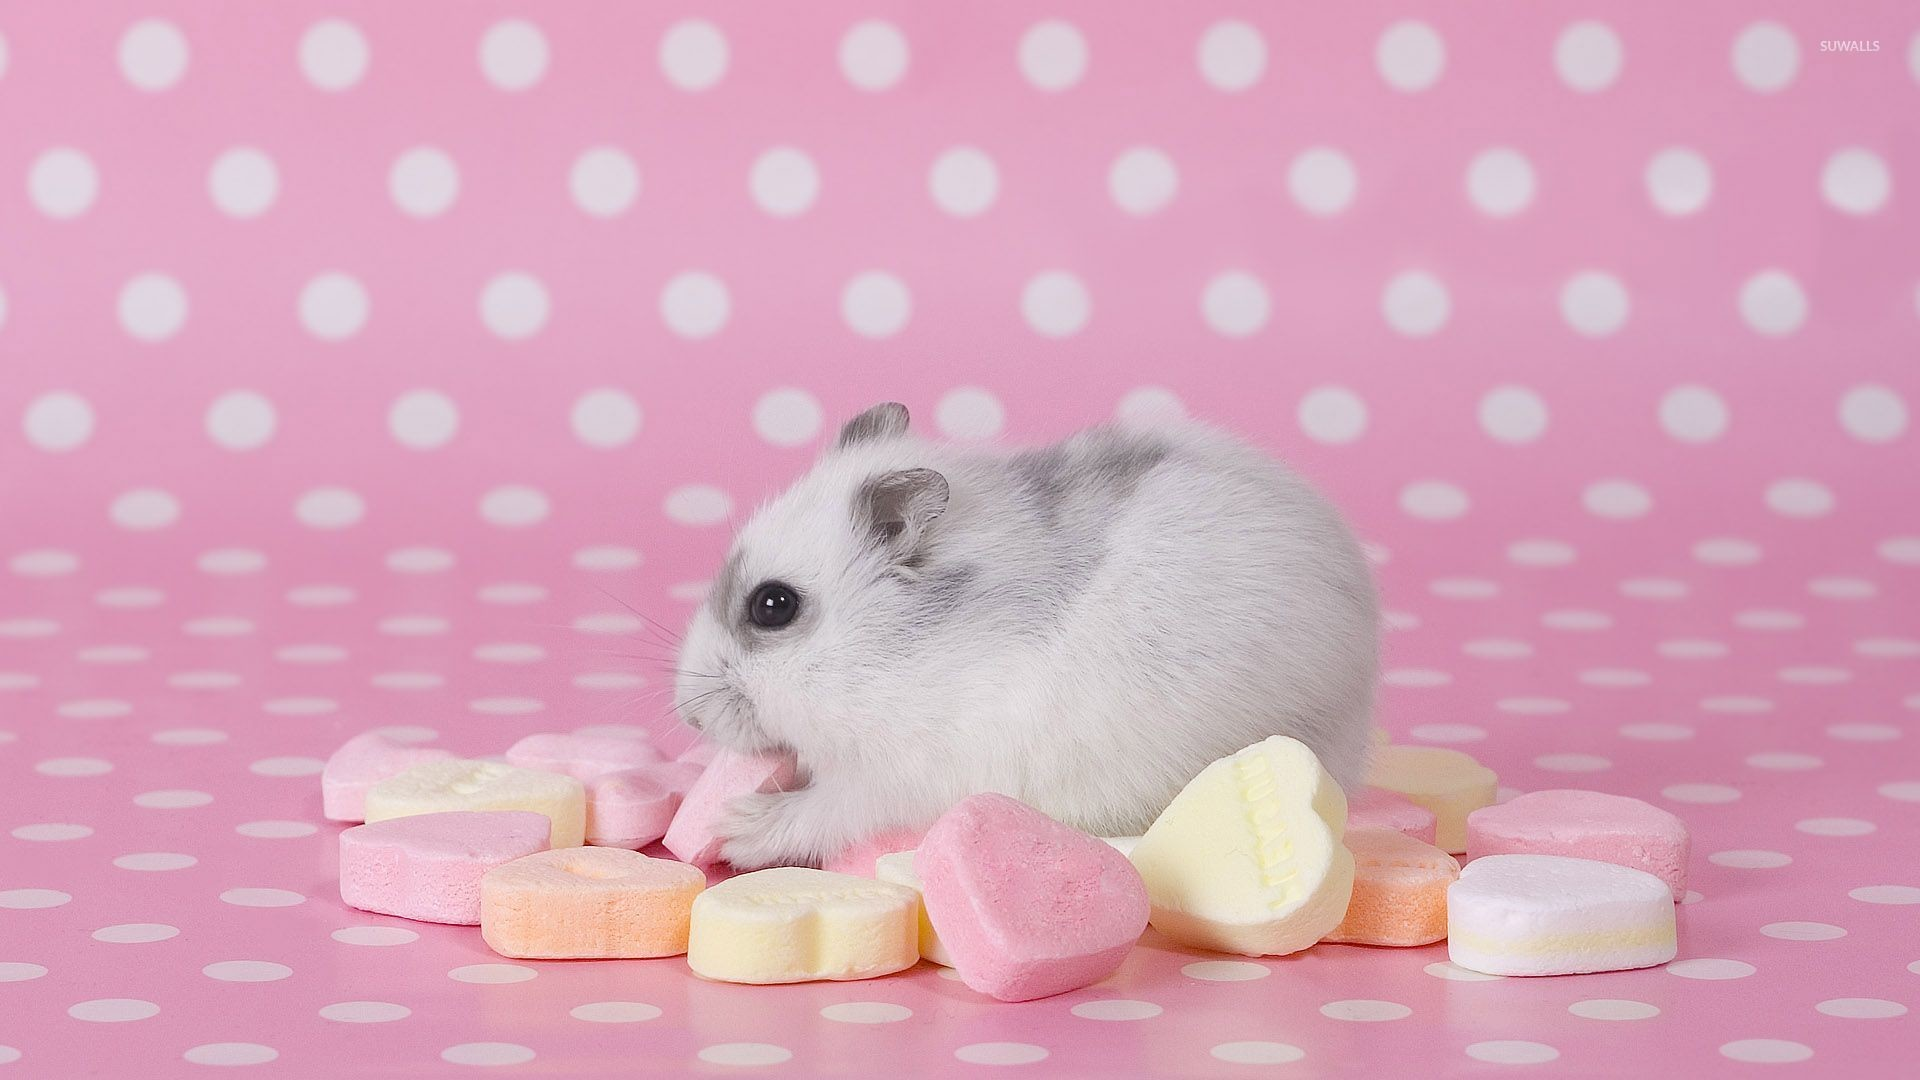 Res: 1920x1080, Hamster eating candy wallpaper  jpg